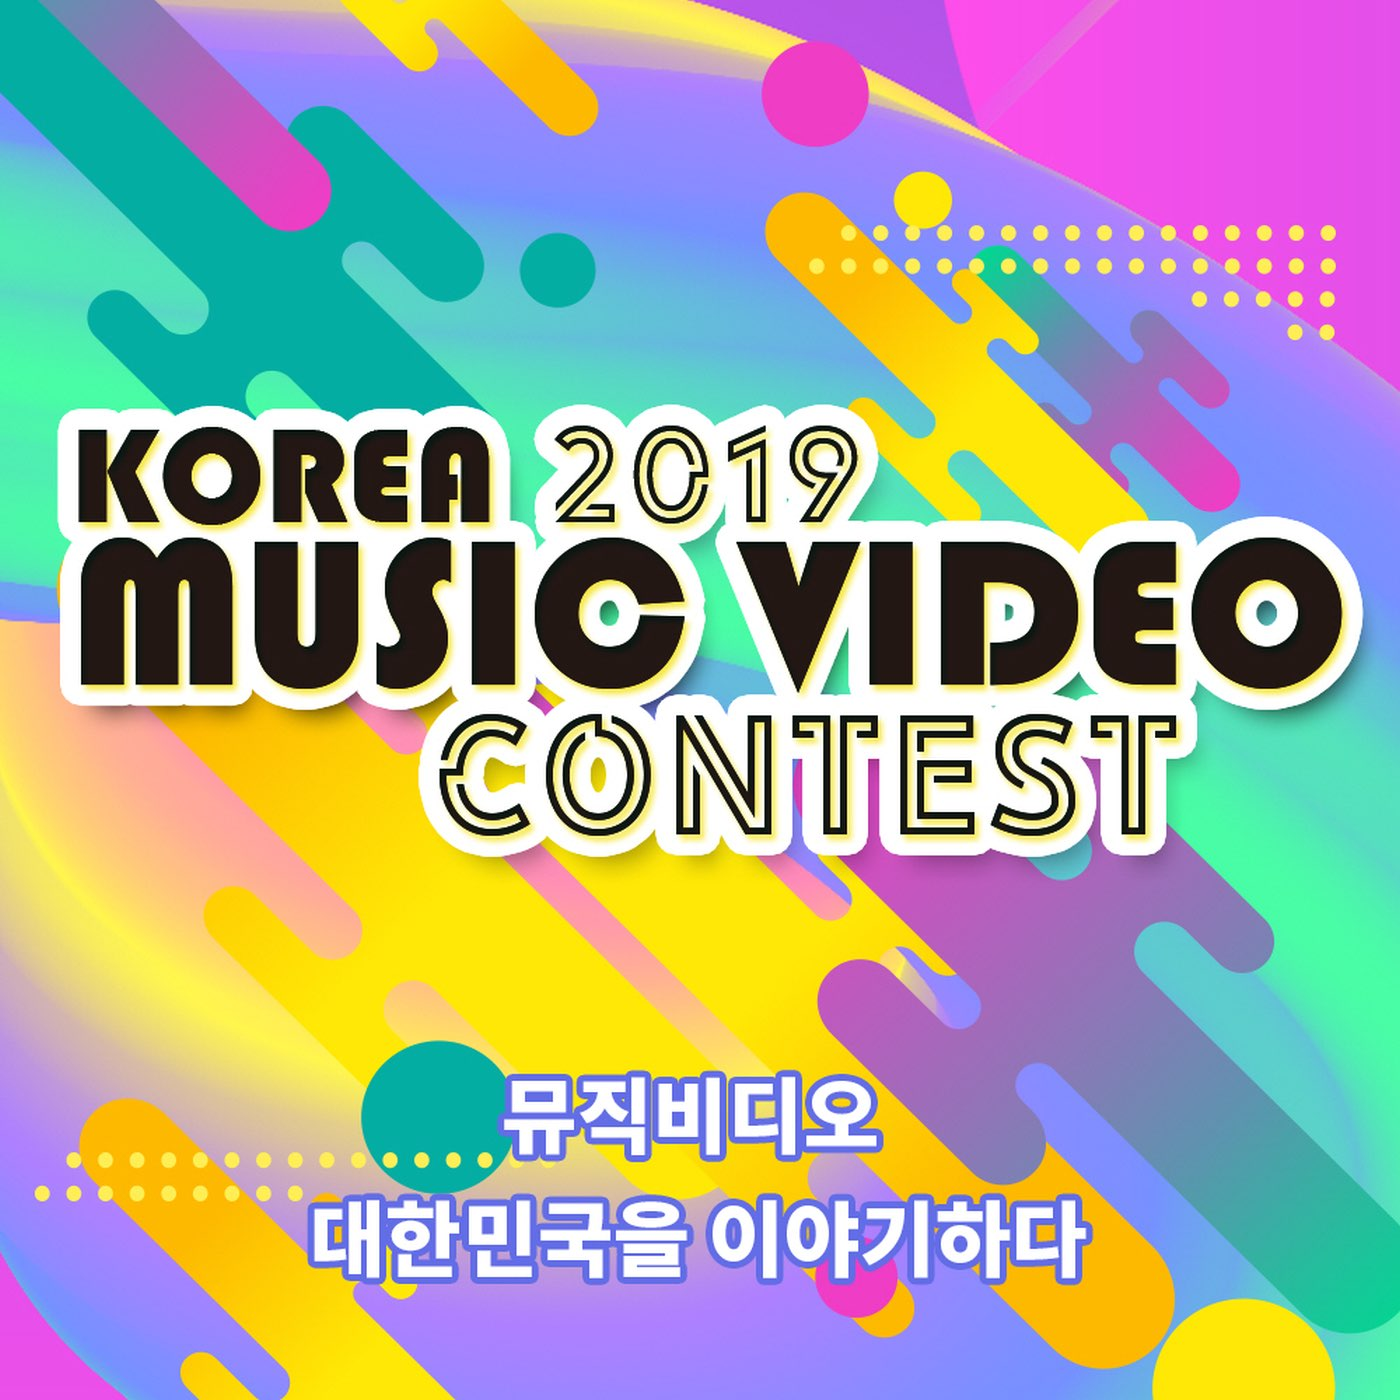 2019 Korea Music Video Contest